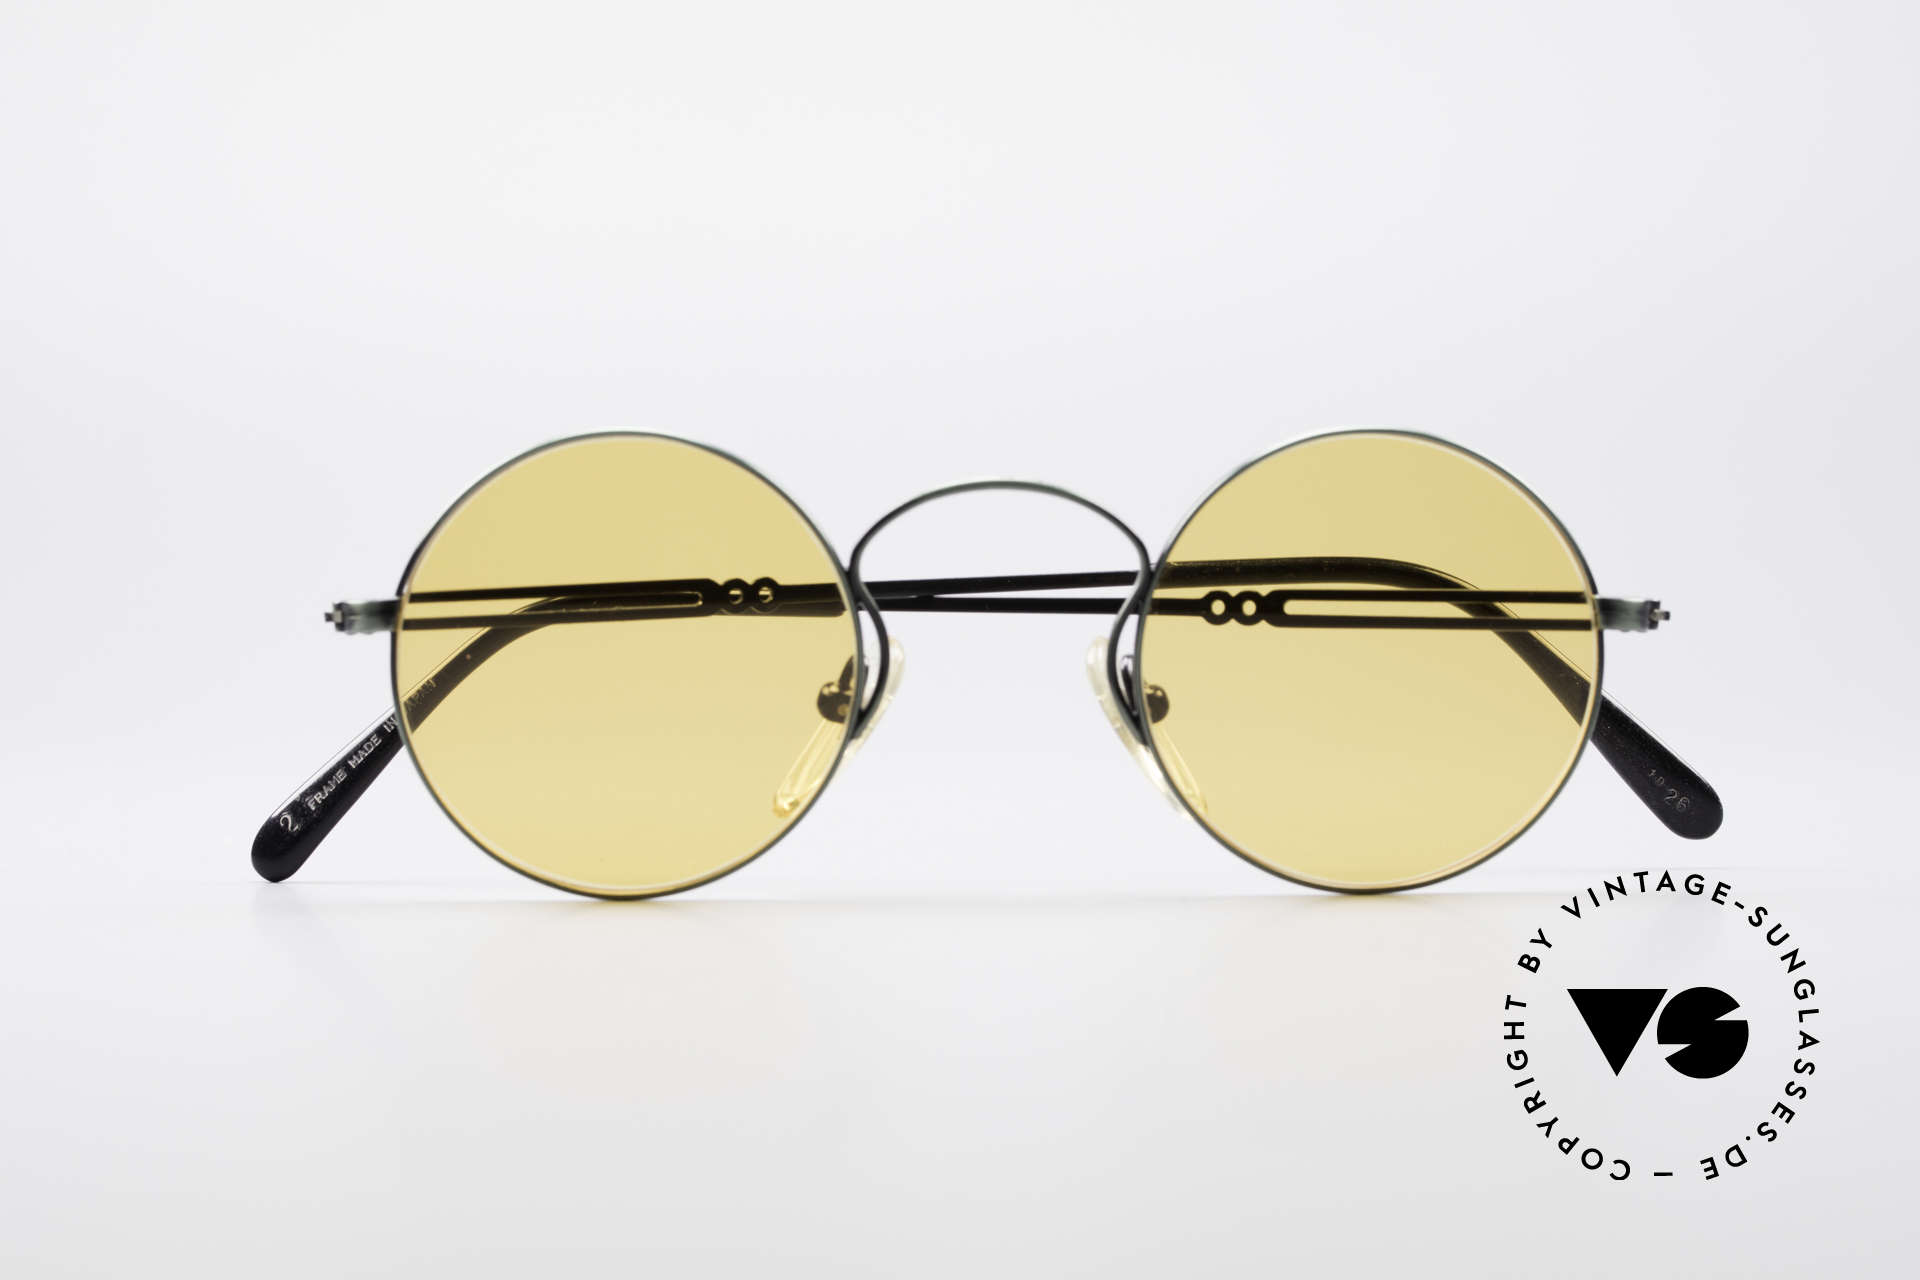 Jean Paul Gaultier 55-0172 Round Vintage Glasses JPG, orange sun lenses can be replaced with prescriptions, Made for Men and Women